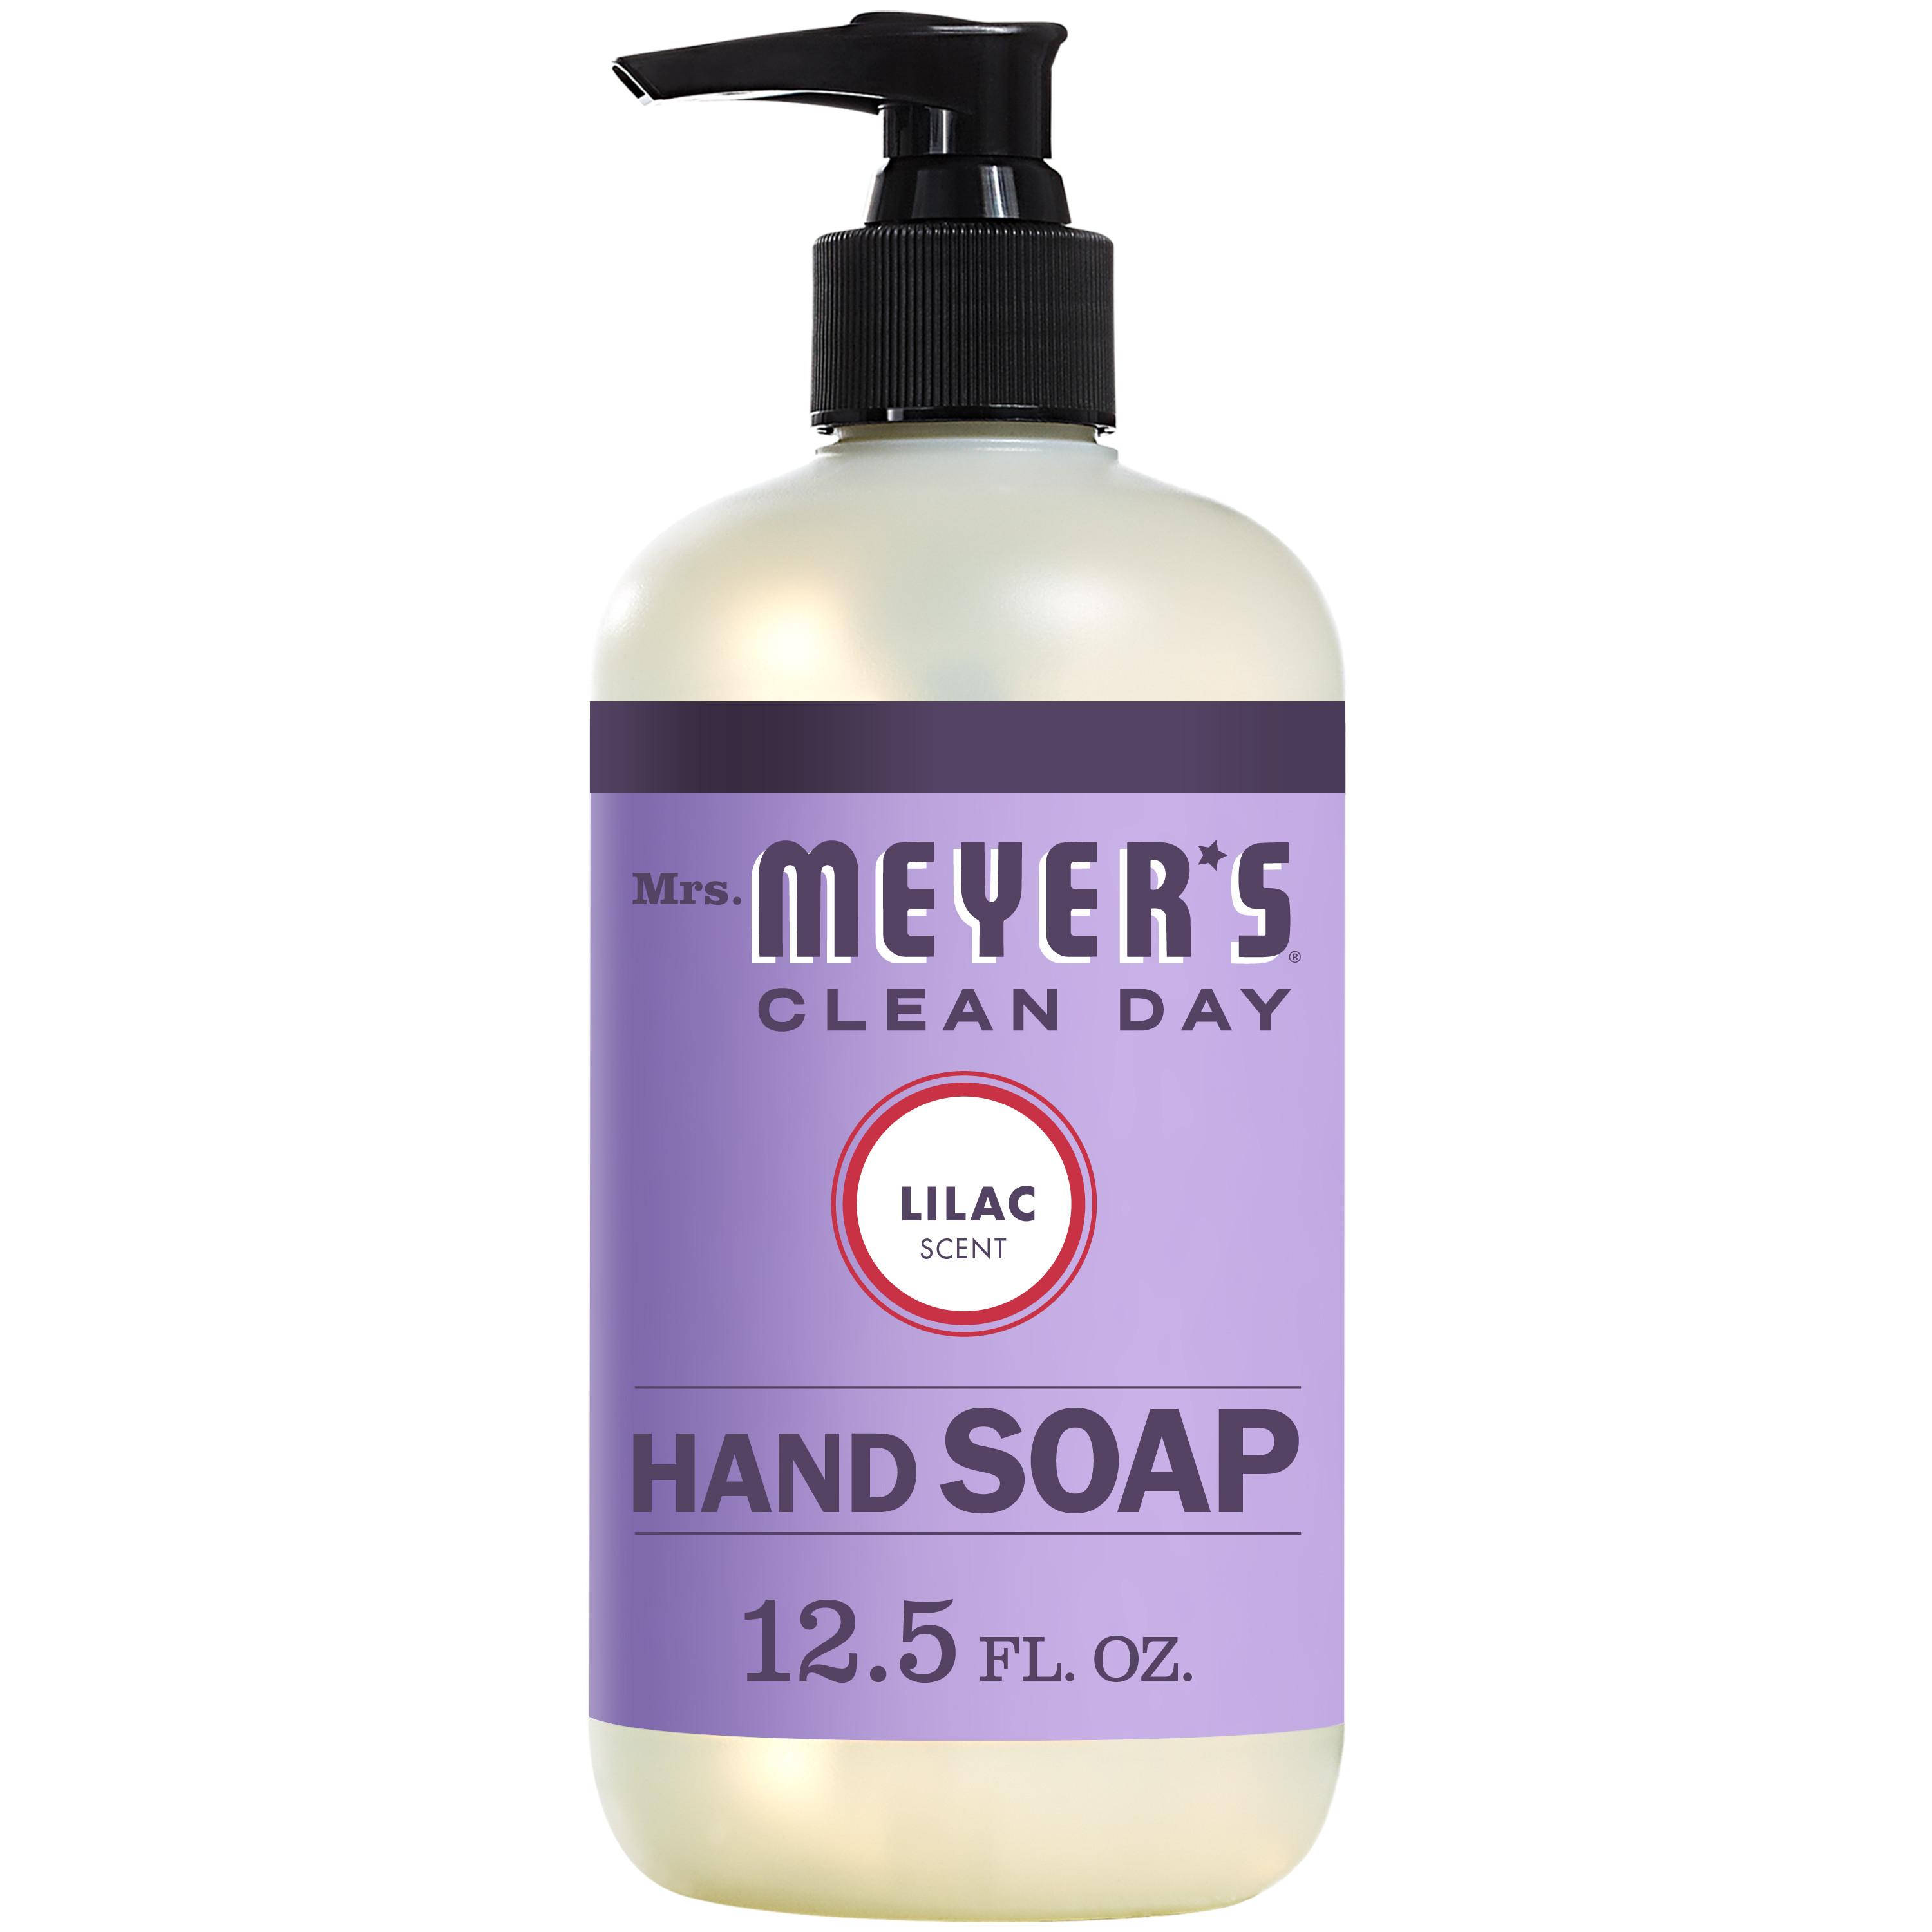 (3 pack) Mrs. Meyer's Clean Day Liquid Hand Soap, Lilac, 12.5 Oz